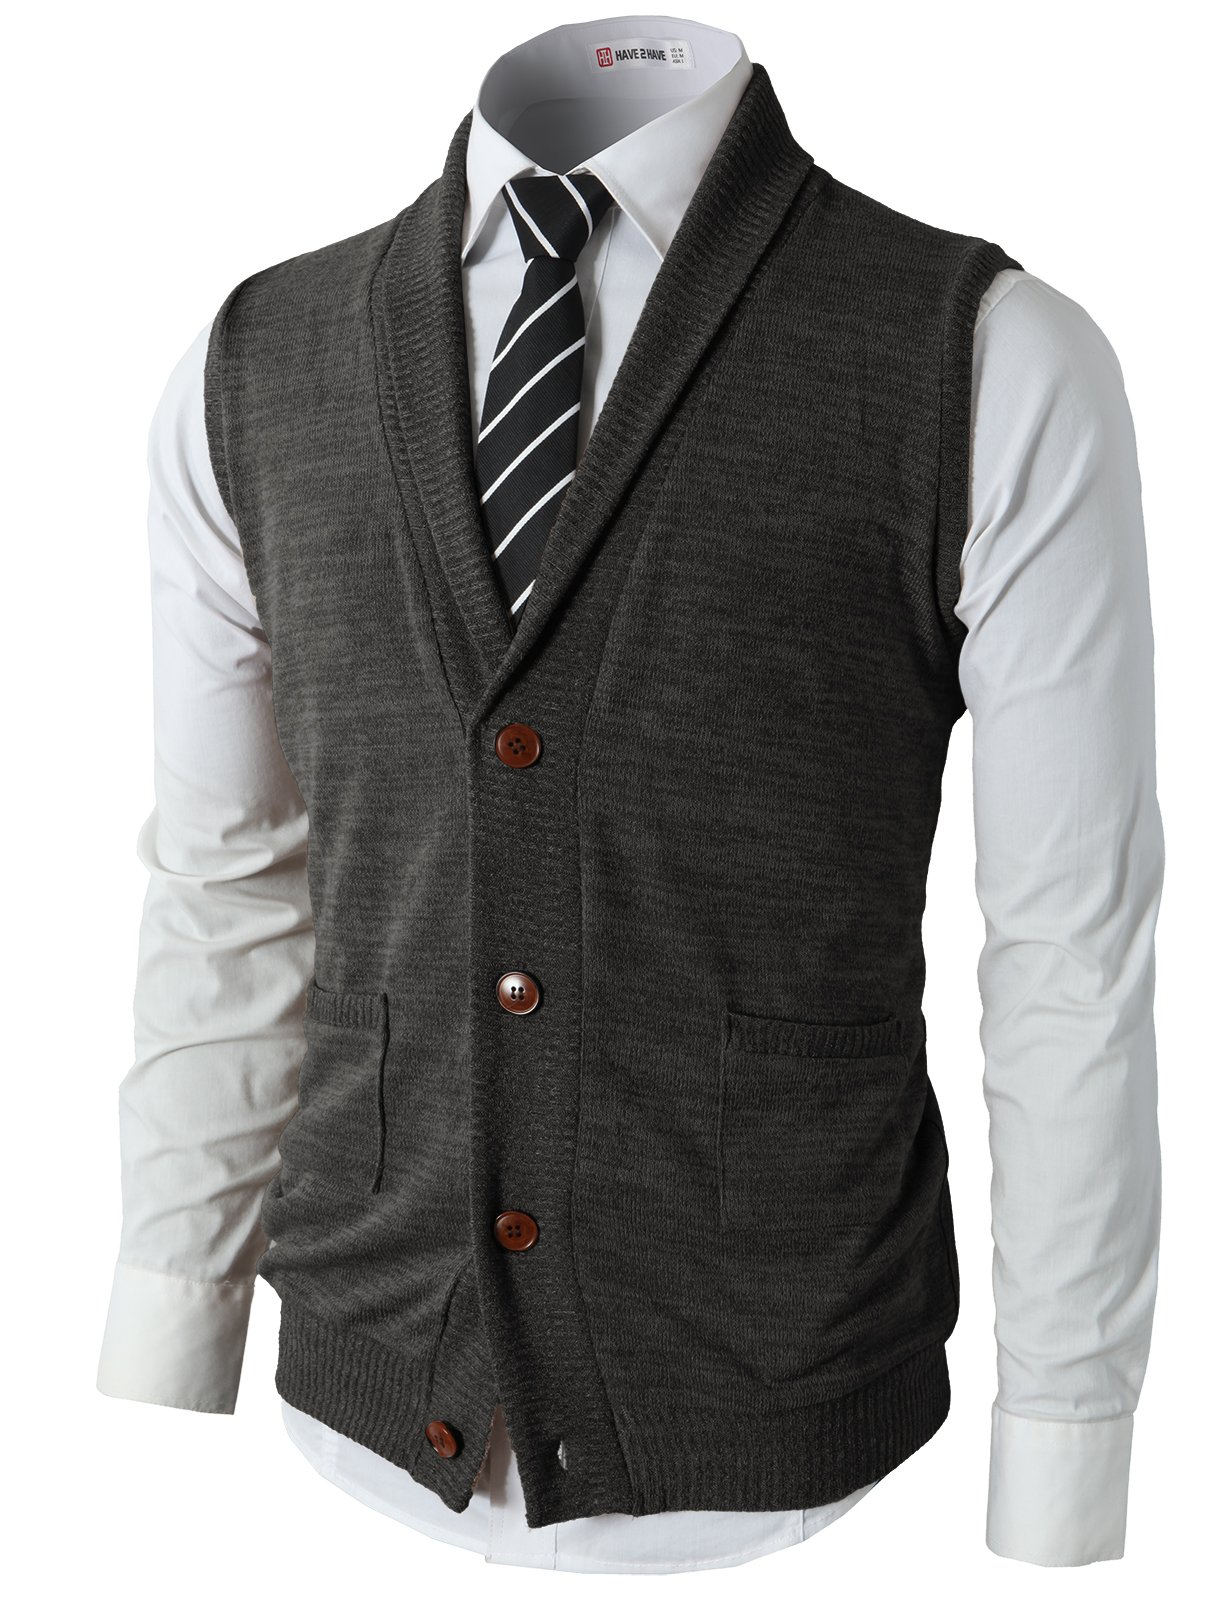 H2H Mens Casual Basic Shawl Collar Knitted Lightweight Vest Charcoal US 2XL/Asia 3XL (CMOV034)